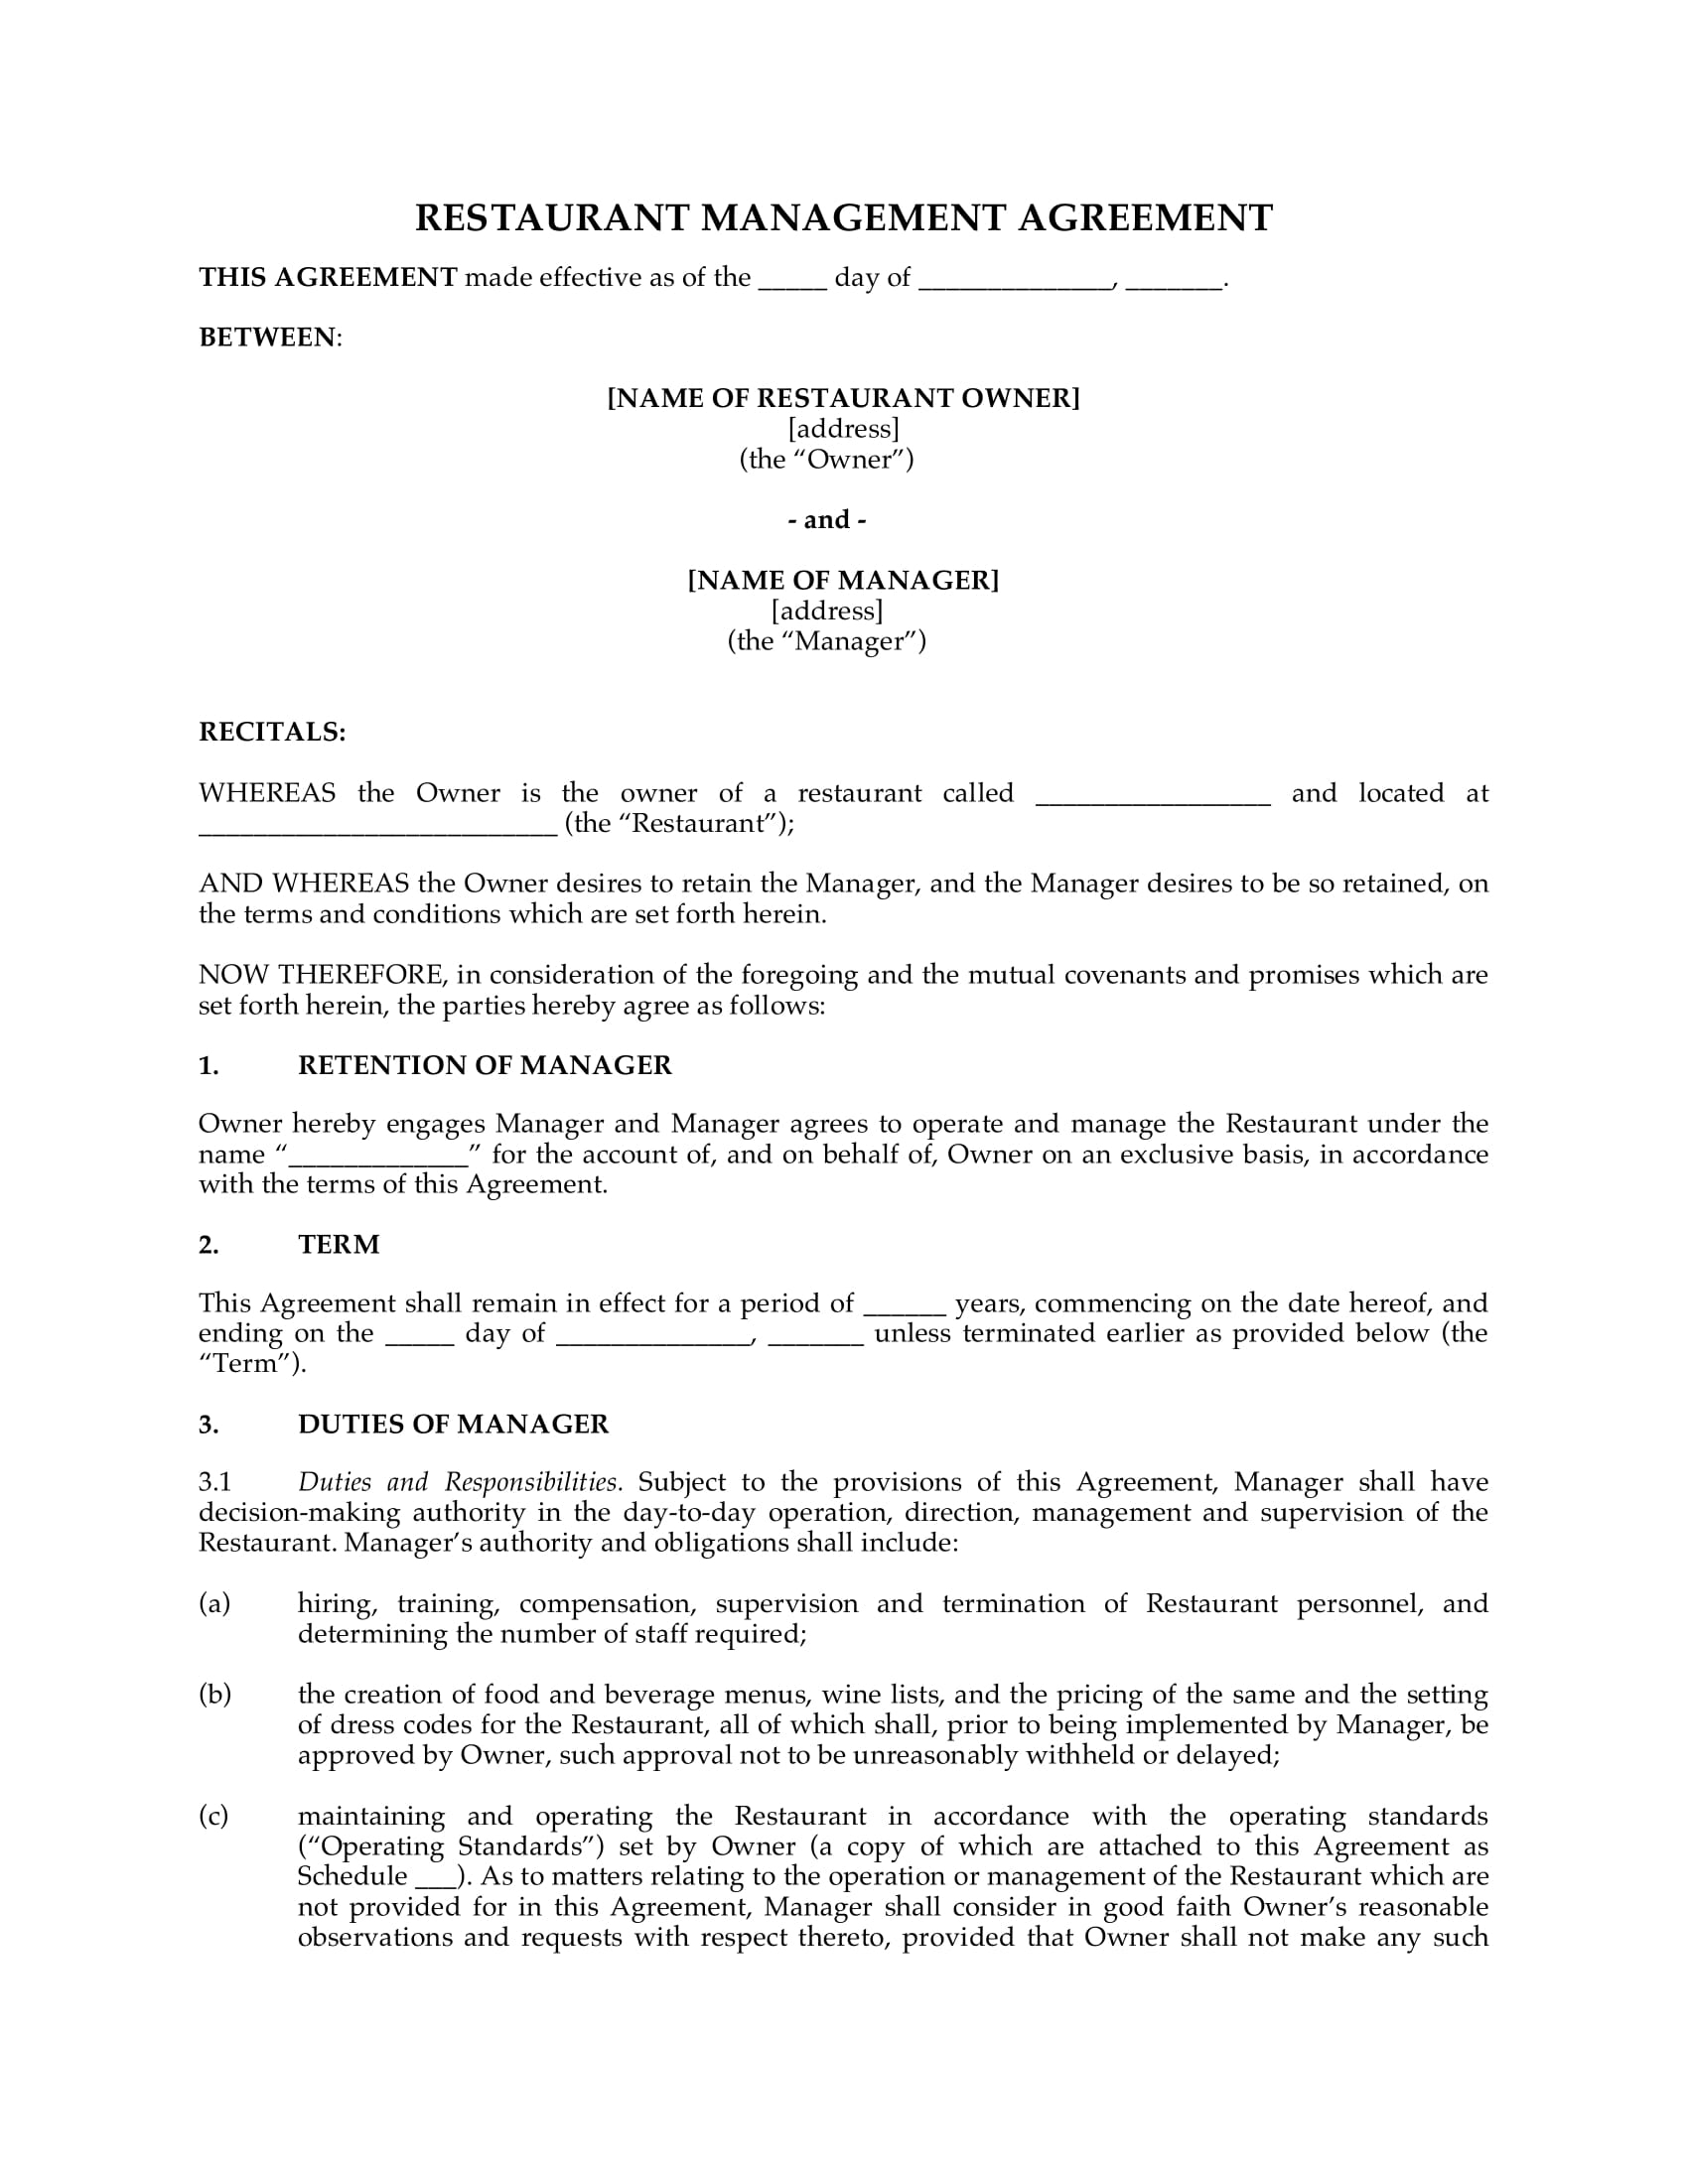 business restaurant agreement form 2